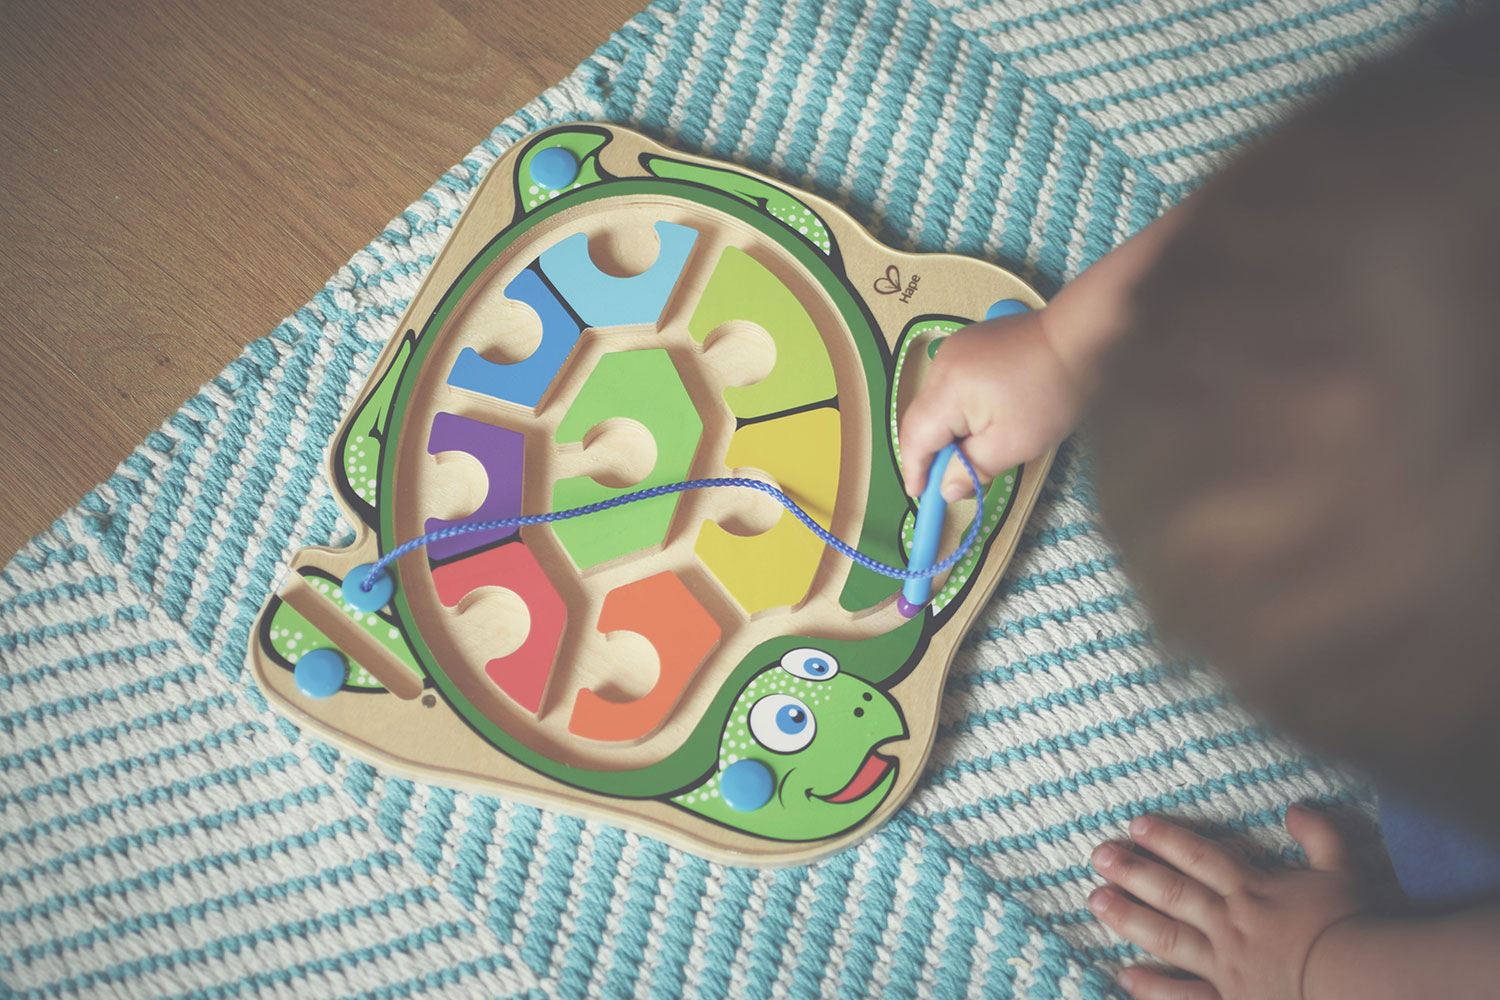 Wicked Uncle; The laziest way to buy awesome gifts - Online toy store selling high-quality toys and gifts for children, Hape wooden sea turtle magnetic maze